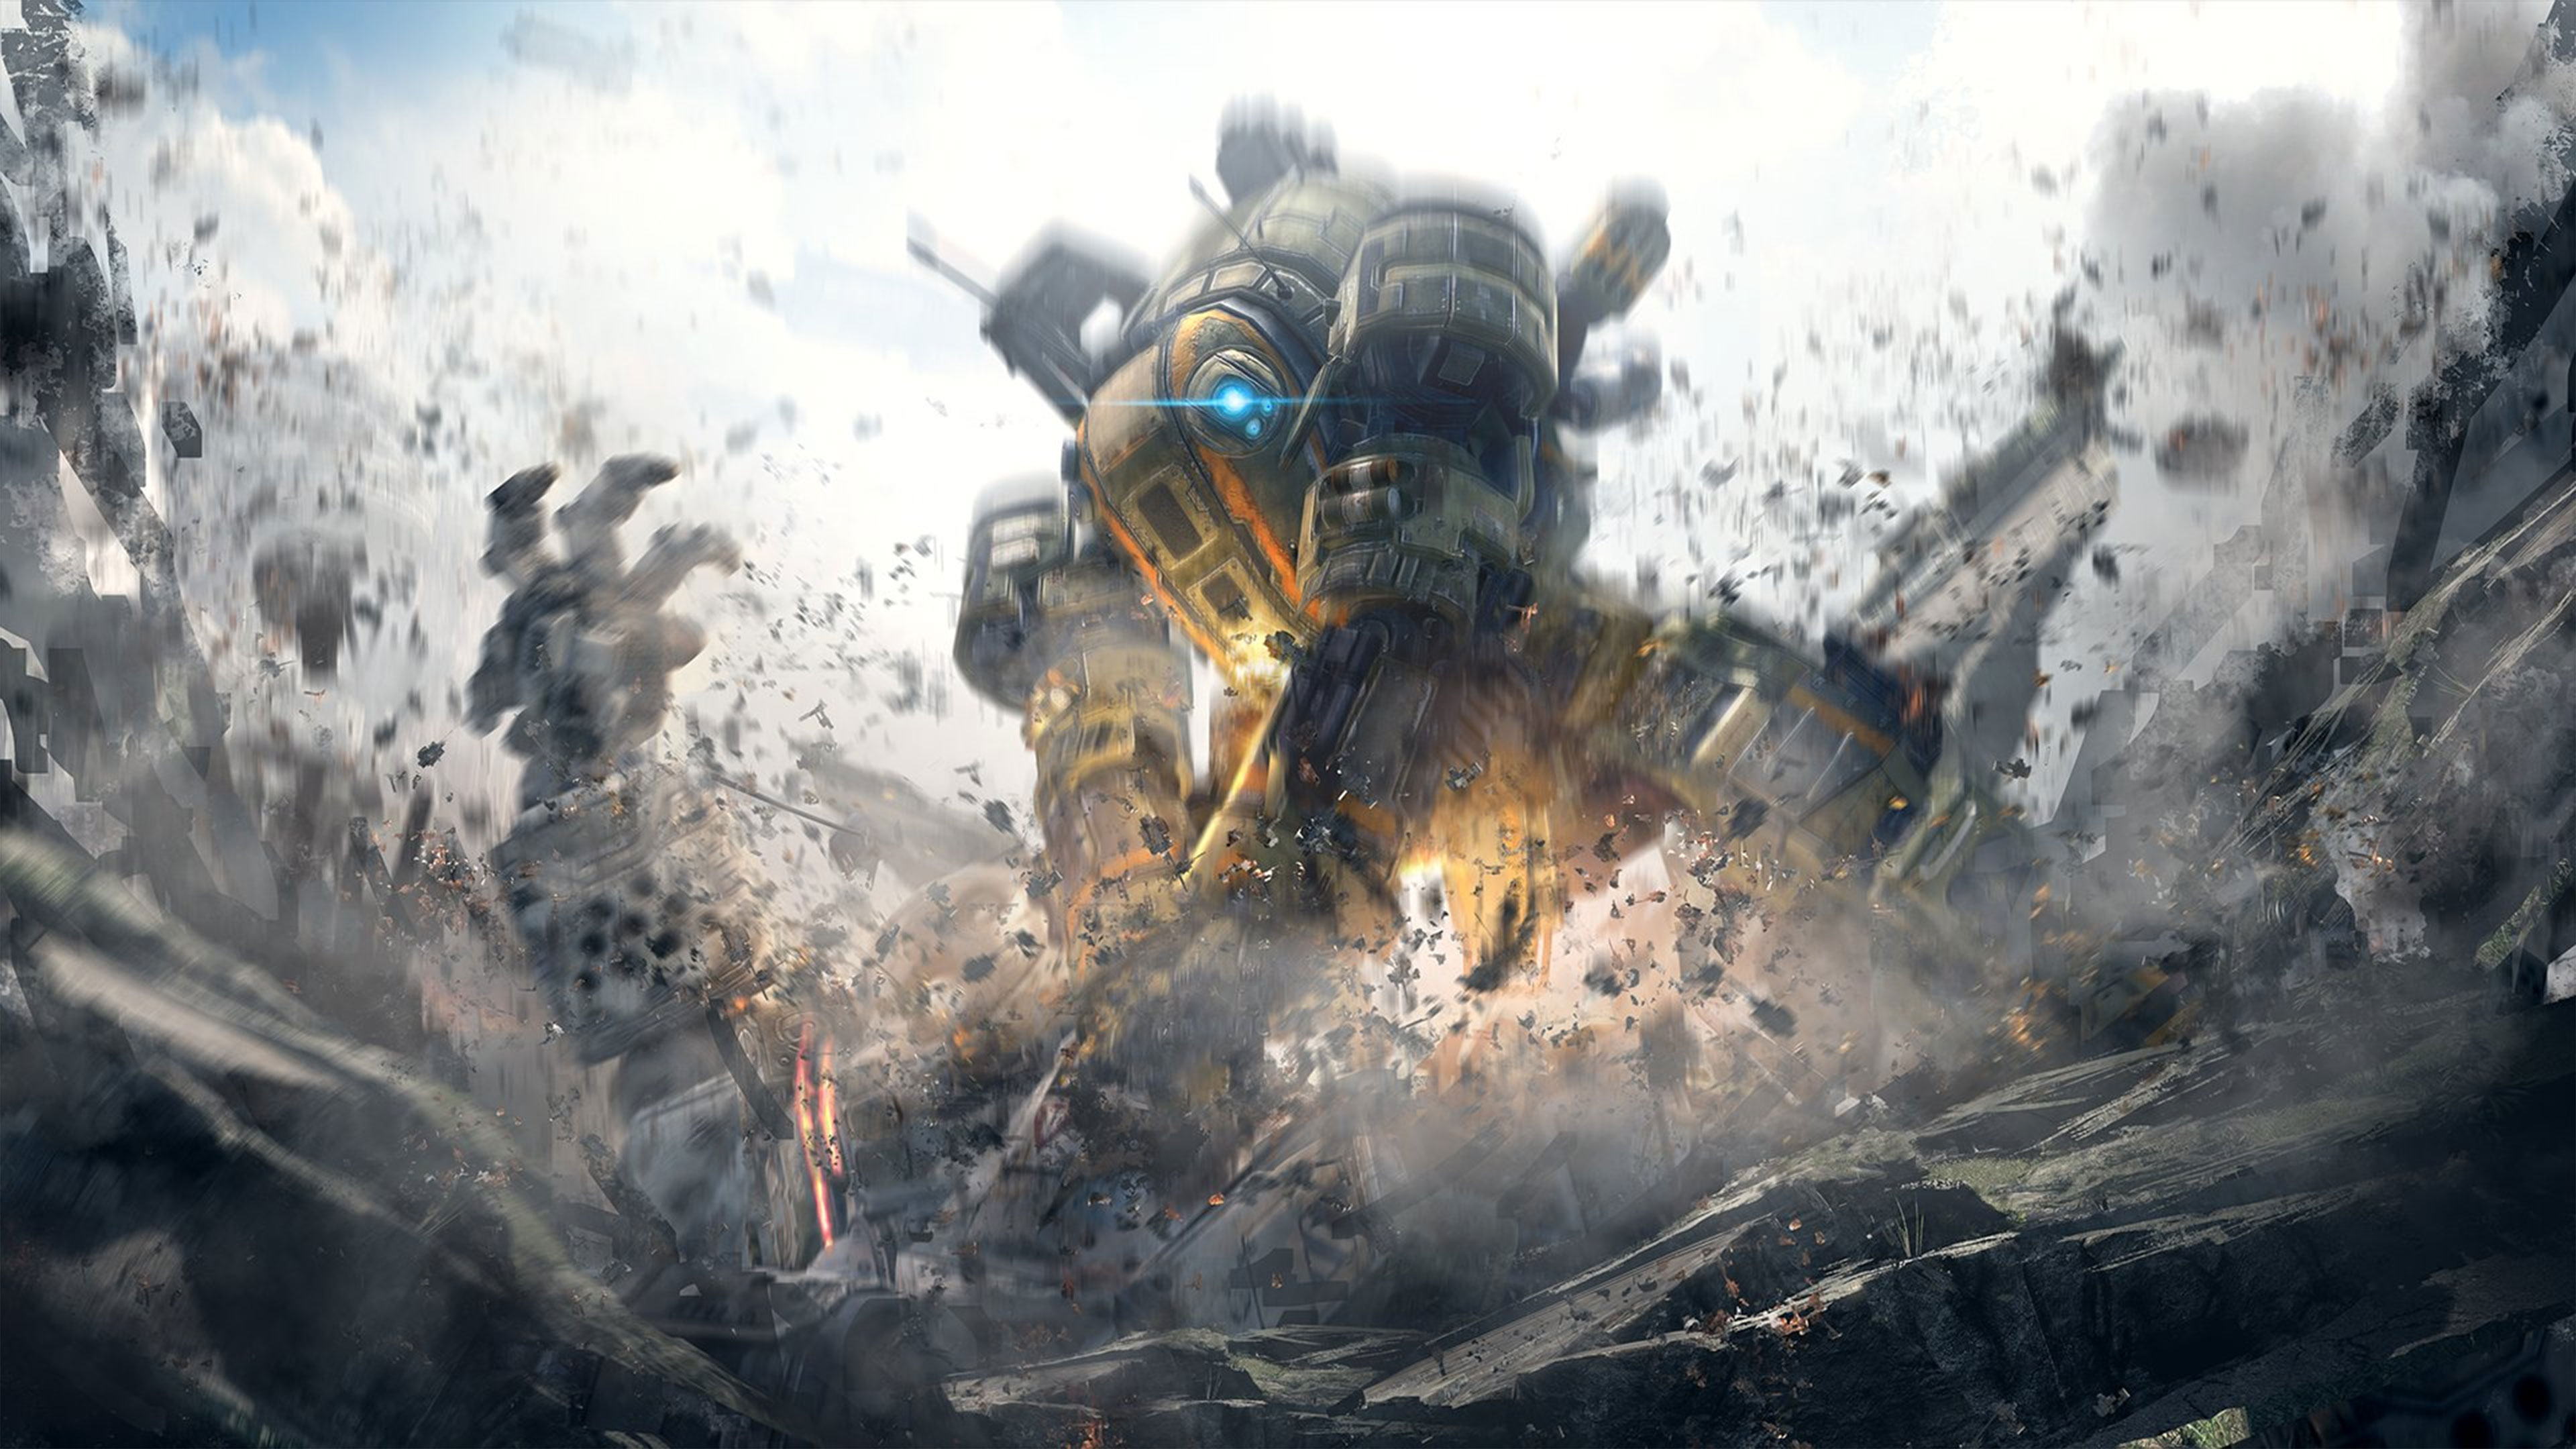 titanfall 2 xbox, hd games, 4k wallpapers, images, backgrounds